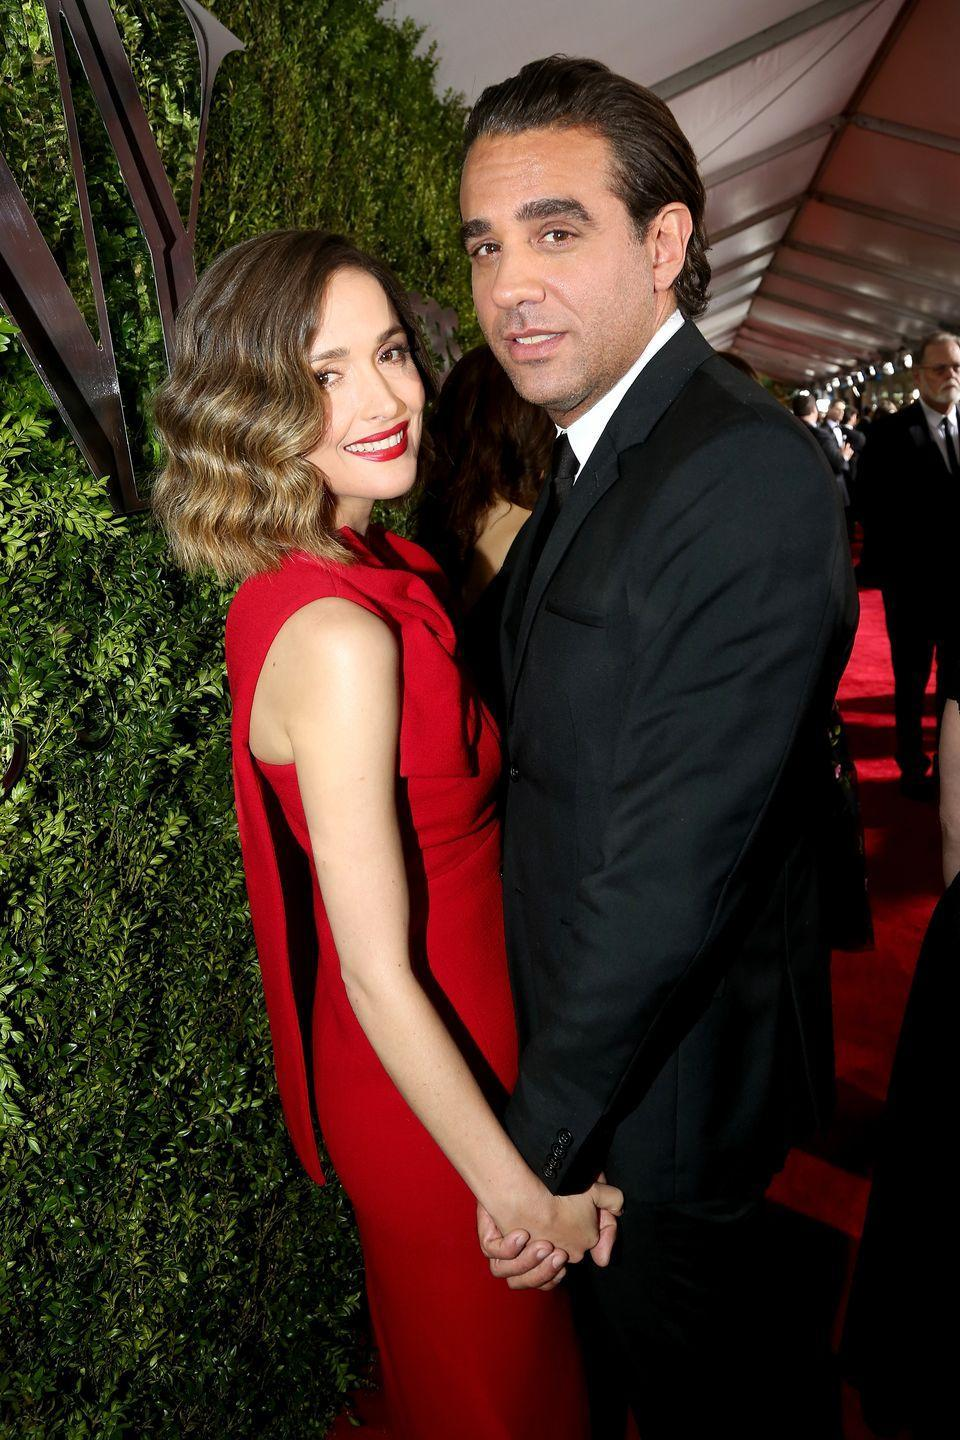 """<p><strong>How long they've been together: </strong>They met in 2012. When Cannavale accepted his Emmy in 2013 for his role in <em>Boardwalk Empire</em>, he included the sweetest shout out: """"And I want to thank the love of my life, Rose."""" *wipes tear*</p><p><strong>Why you forget they're together:</strong> Other than the occasional red carpet appearance, Byrne and Cannavale are usually only photographed together around their Brooklyn neighborhood.<br></p>"""